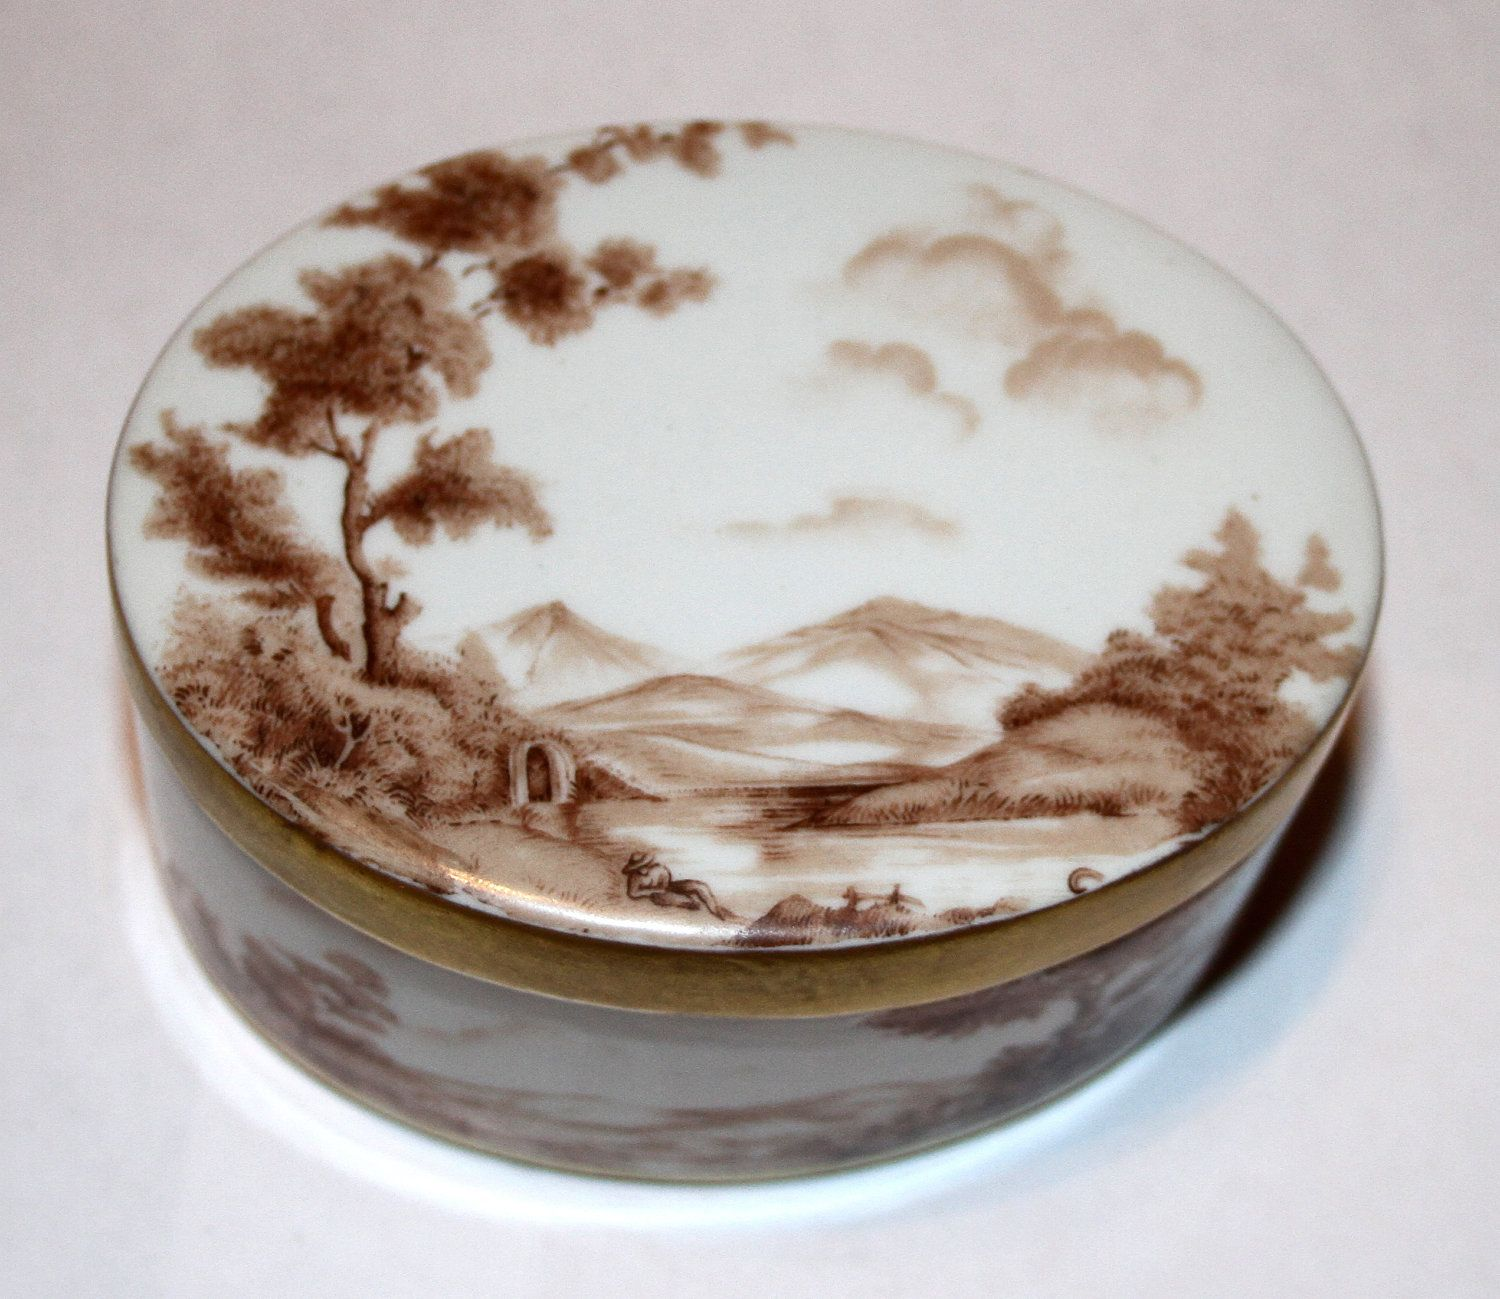 SALE Vintage Porcelain Hand Painted Compote, Trinket Box from Europe -SALE- $7.99 usd